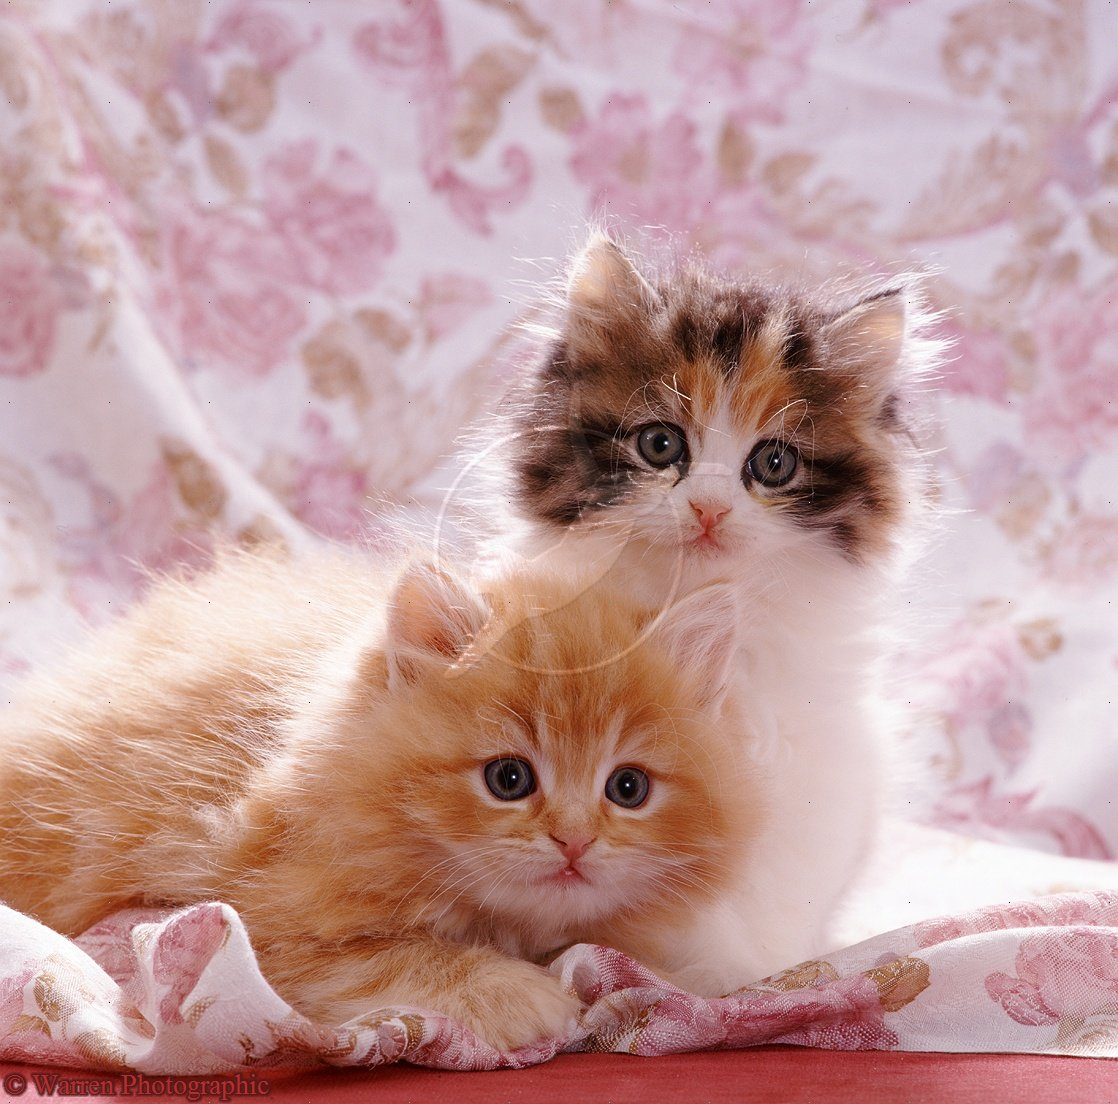 Cute Dog And Cat Wallpaper Posted By Sarah Cunningham